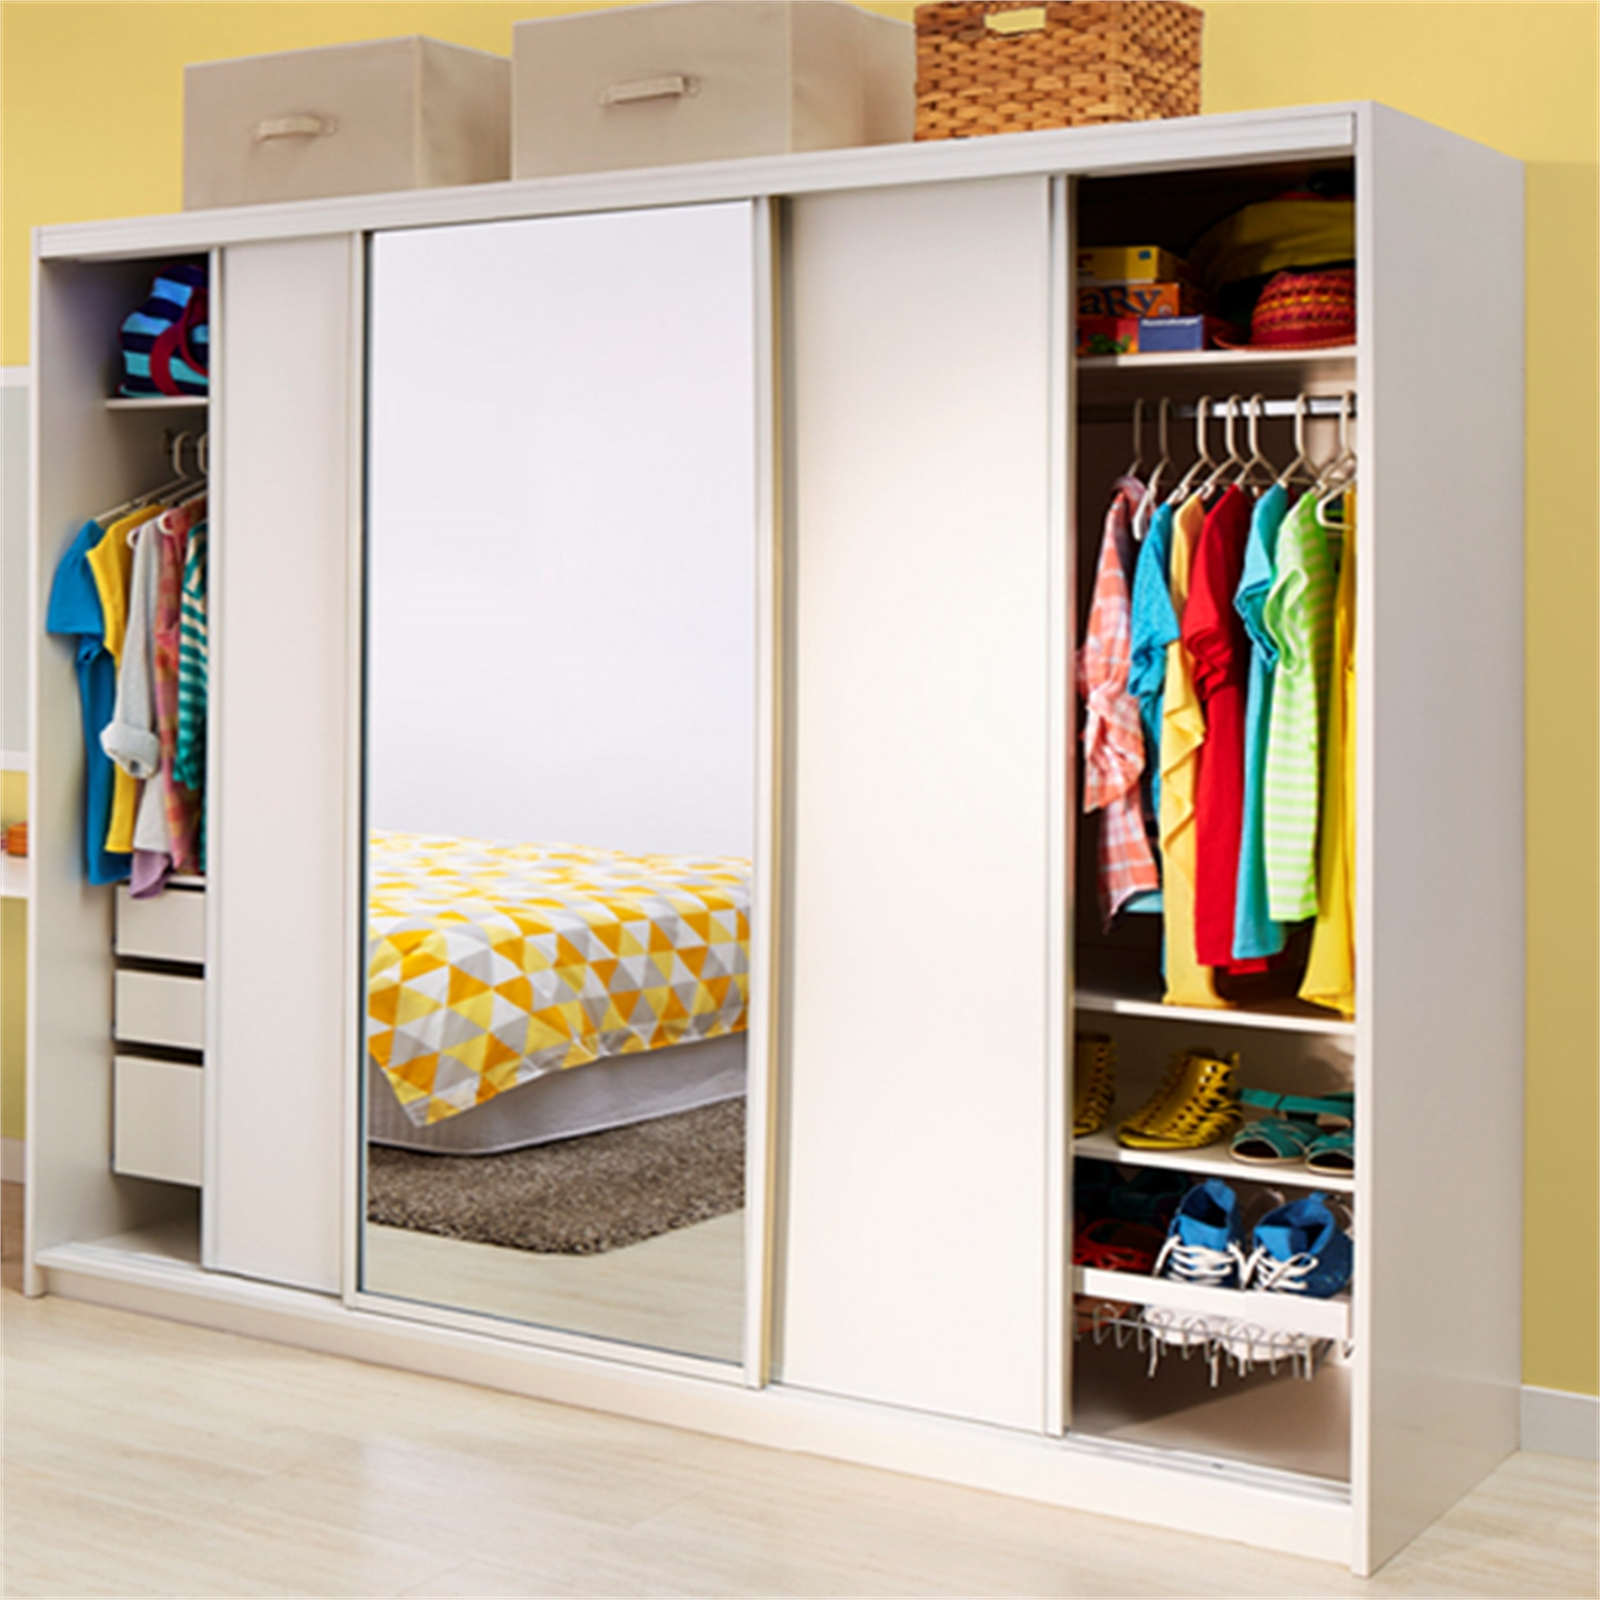 Bedford 3 Door Wardrobe Reviews Productreview Com Au